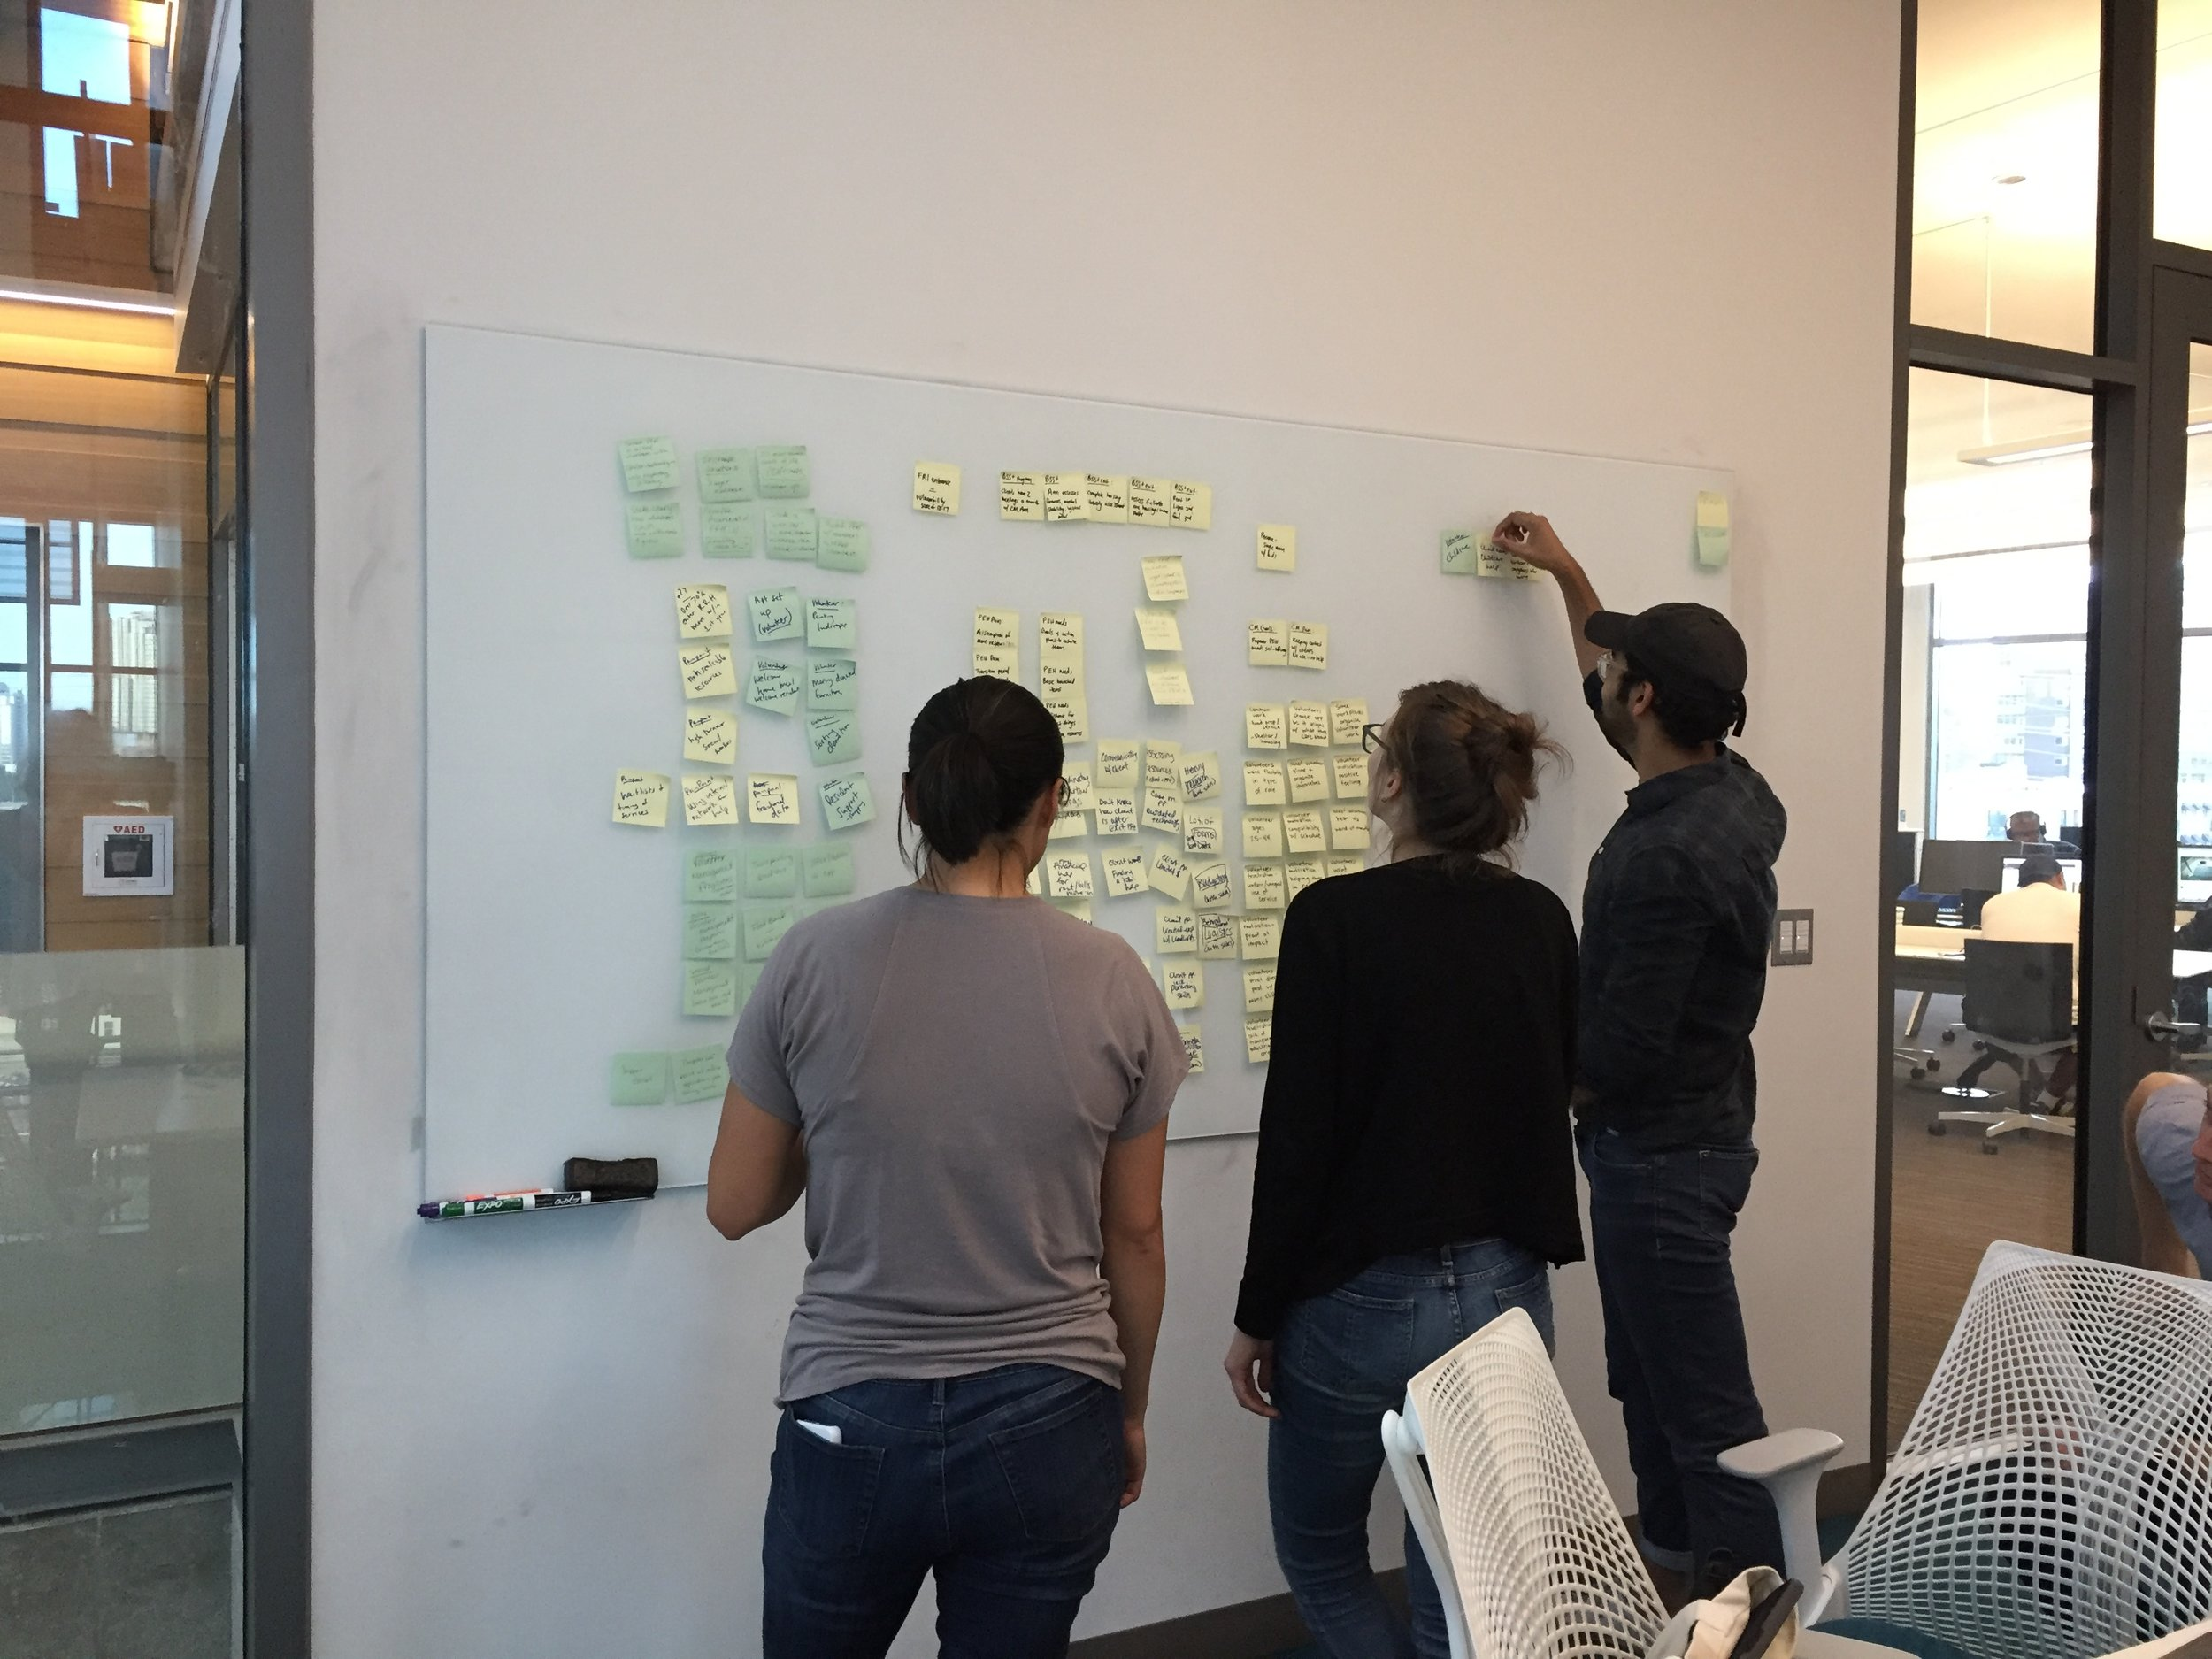 Affinity Mapping - Themes